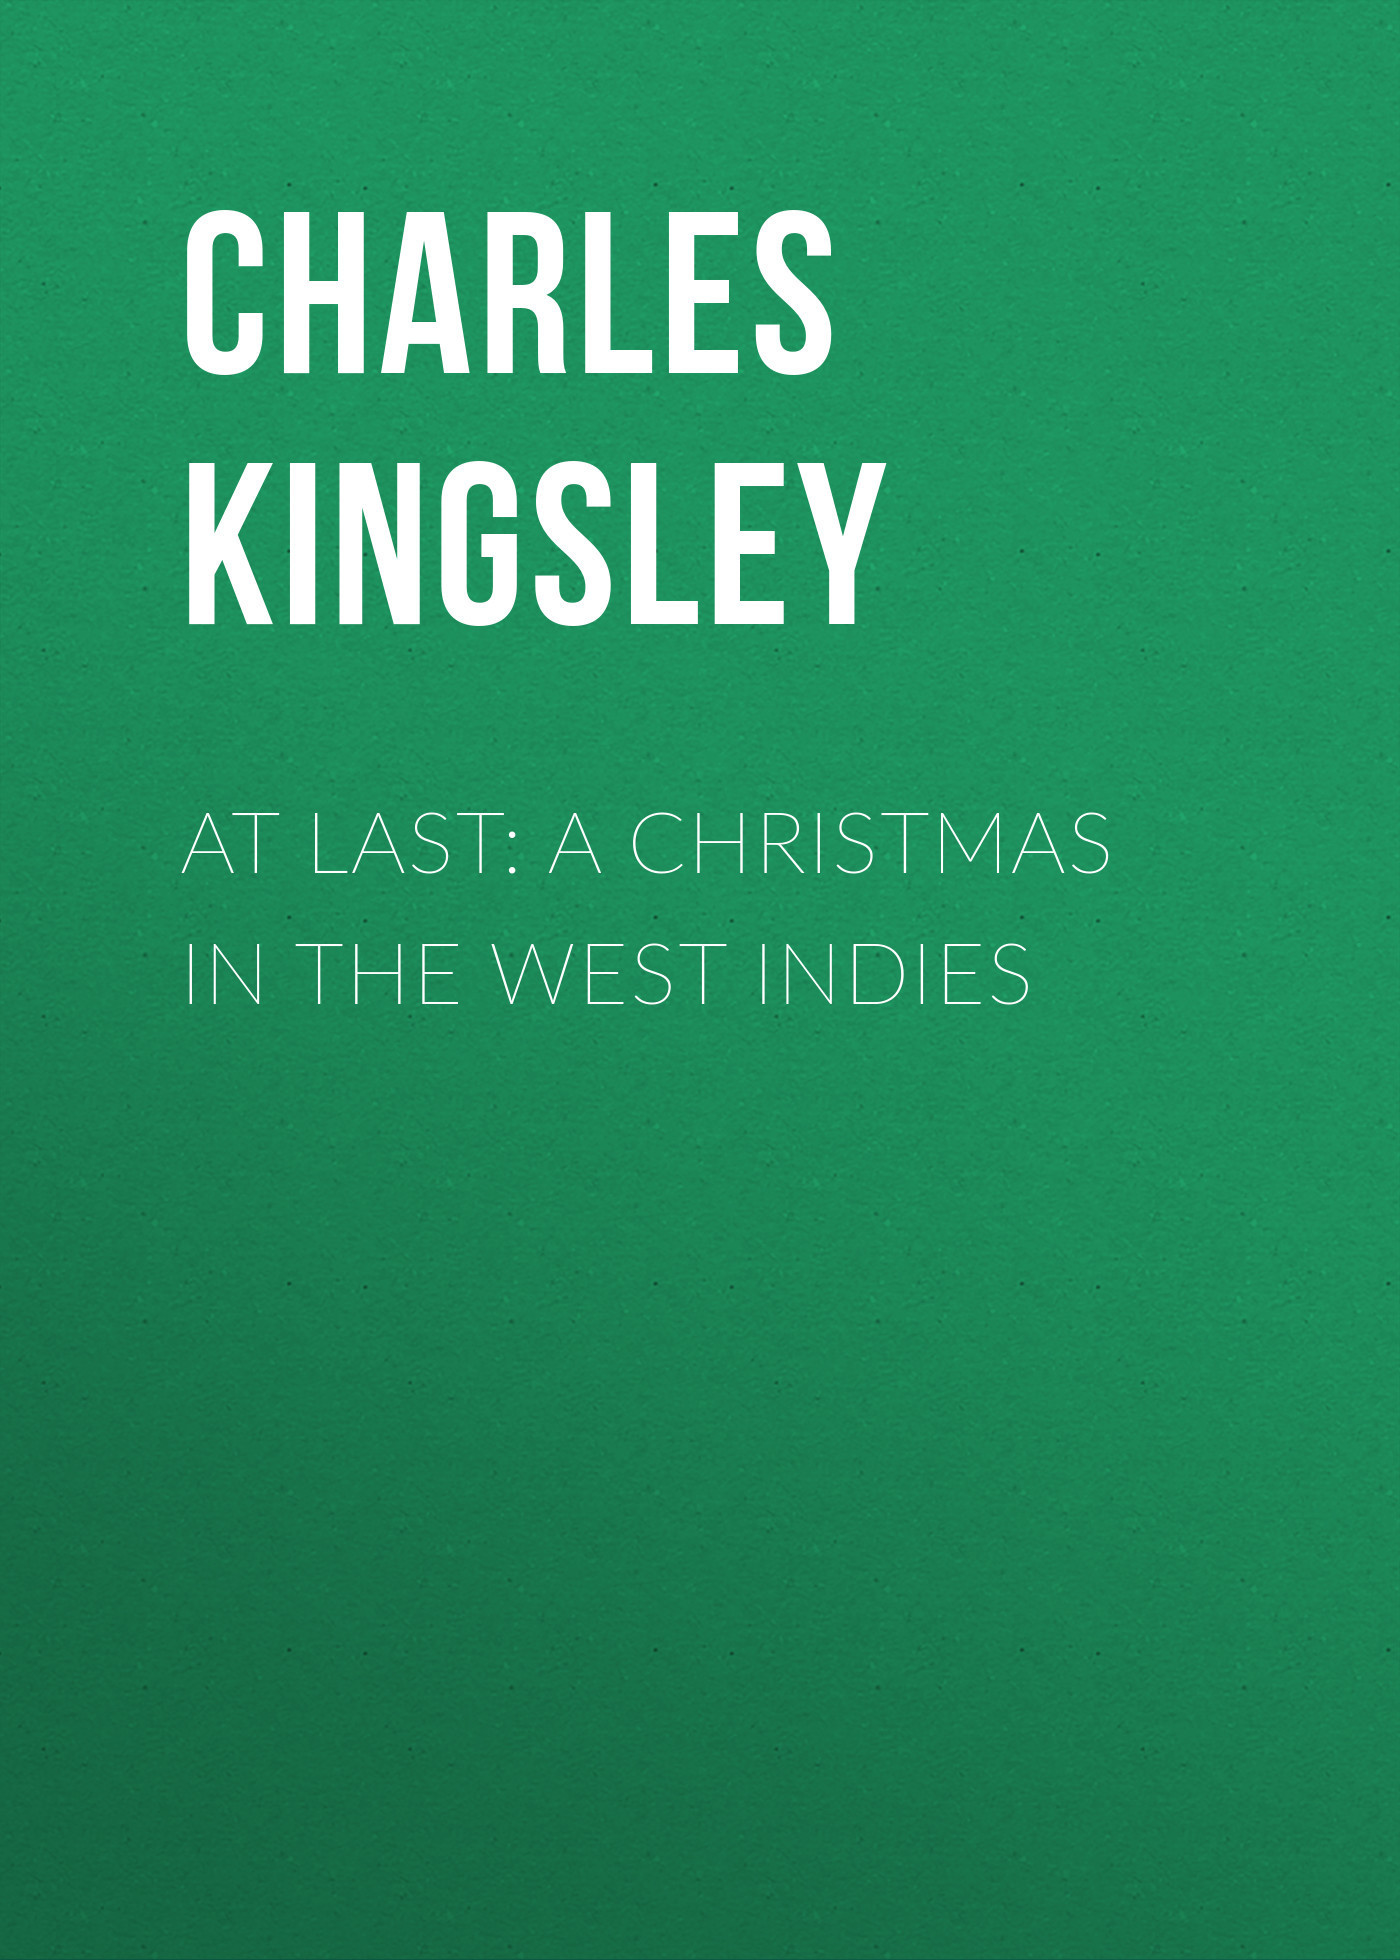 Charles Kingsley At Last: A Christmas in the West Indies